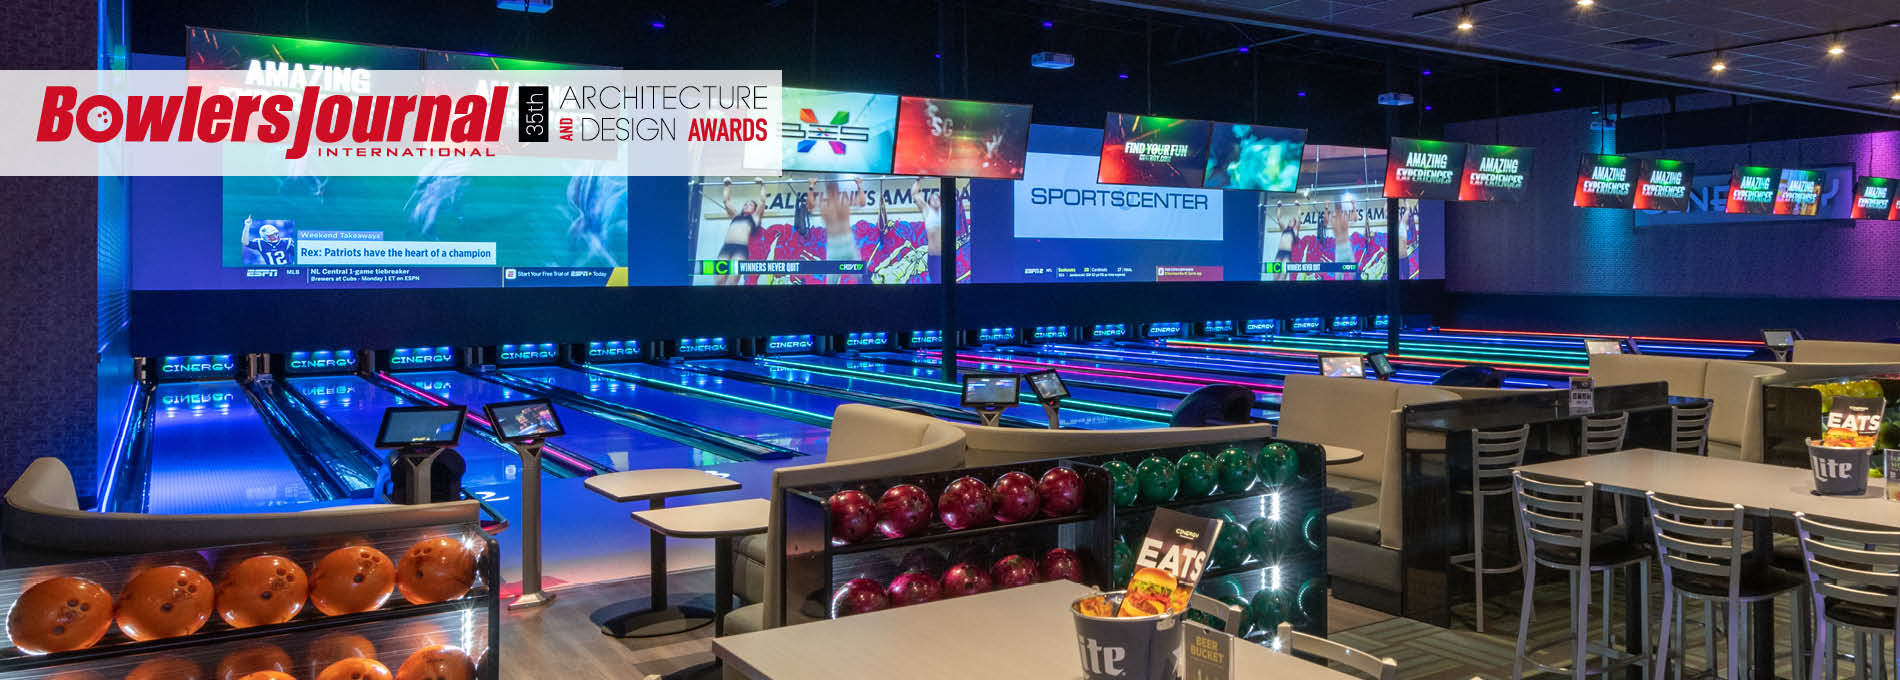 QubicaAMF bowling 35 architectual design awards home banner Cinergy Amarillo